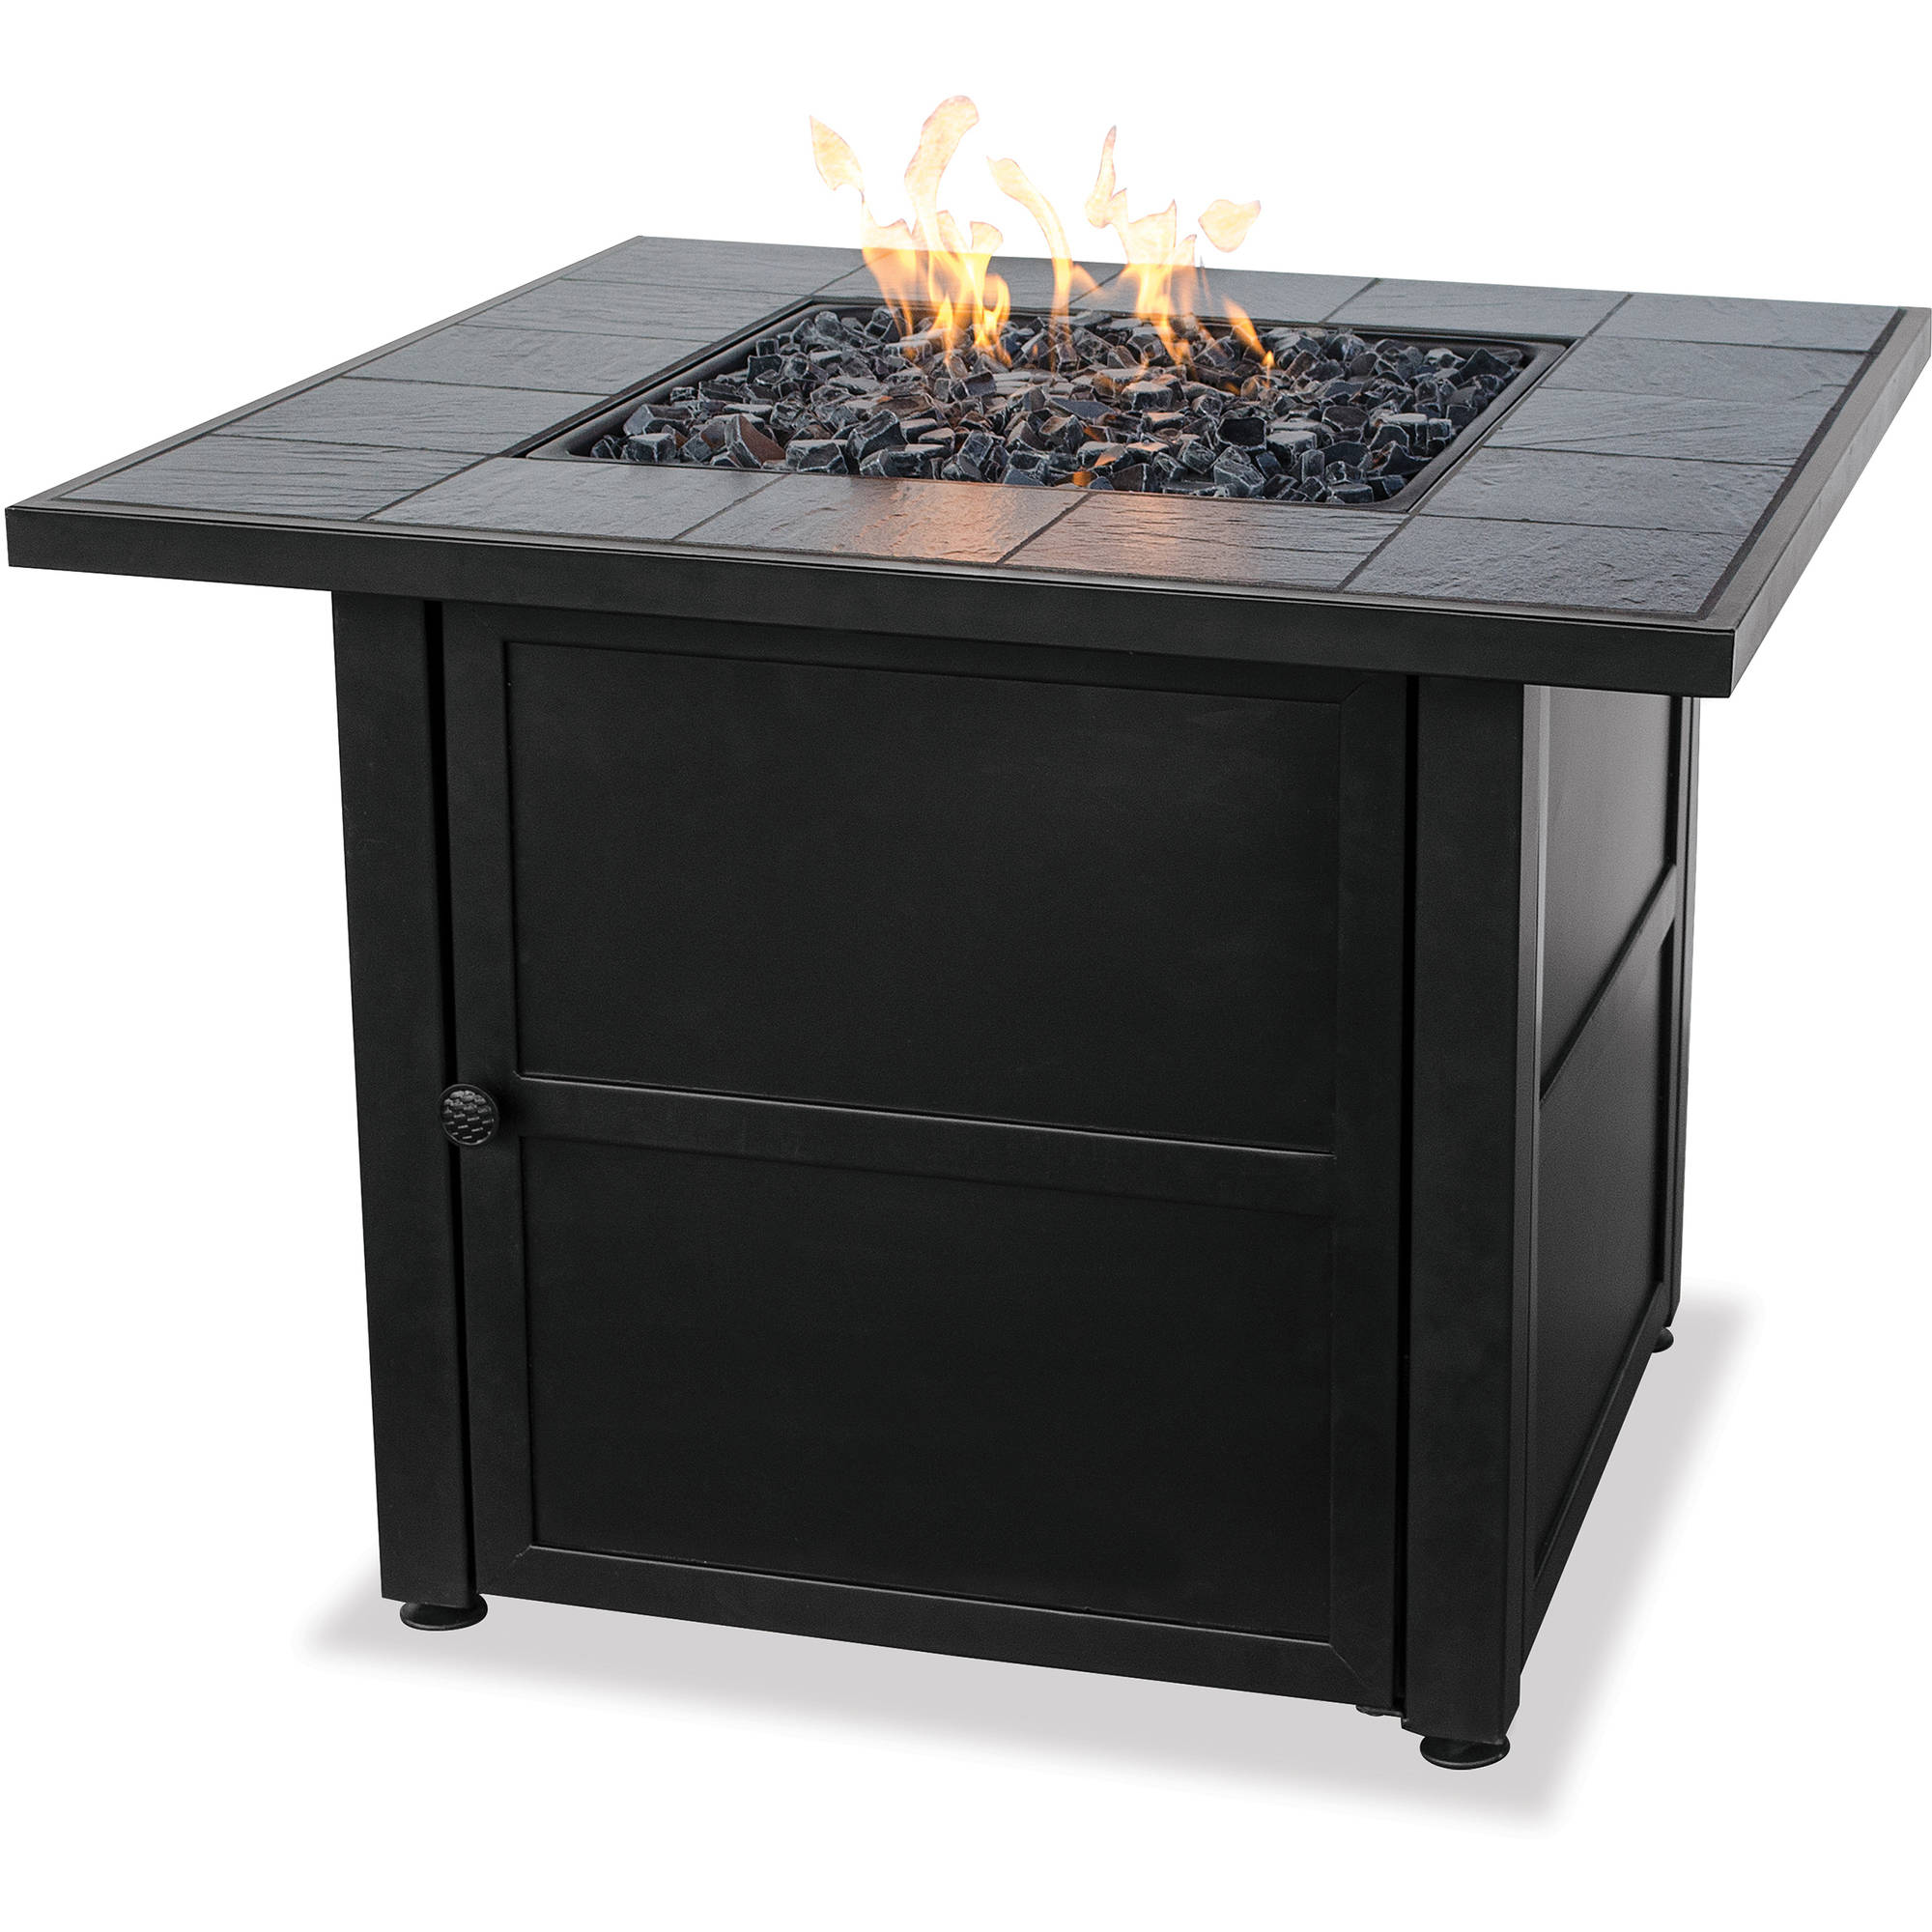 fire pits and outdoor fireplaces target metal patio accent table furniture tables heaters contemporary living room small game chairs decor accents short corner study desk hampton